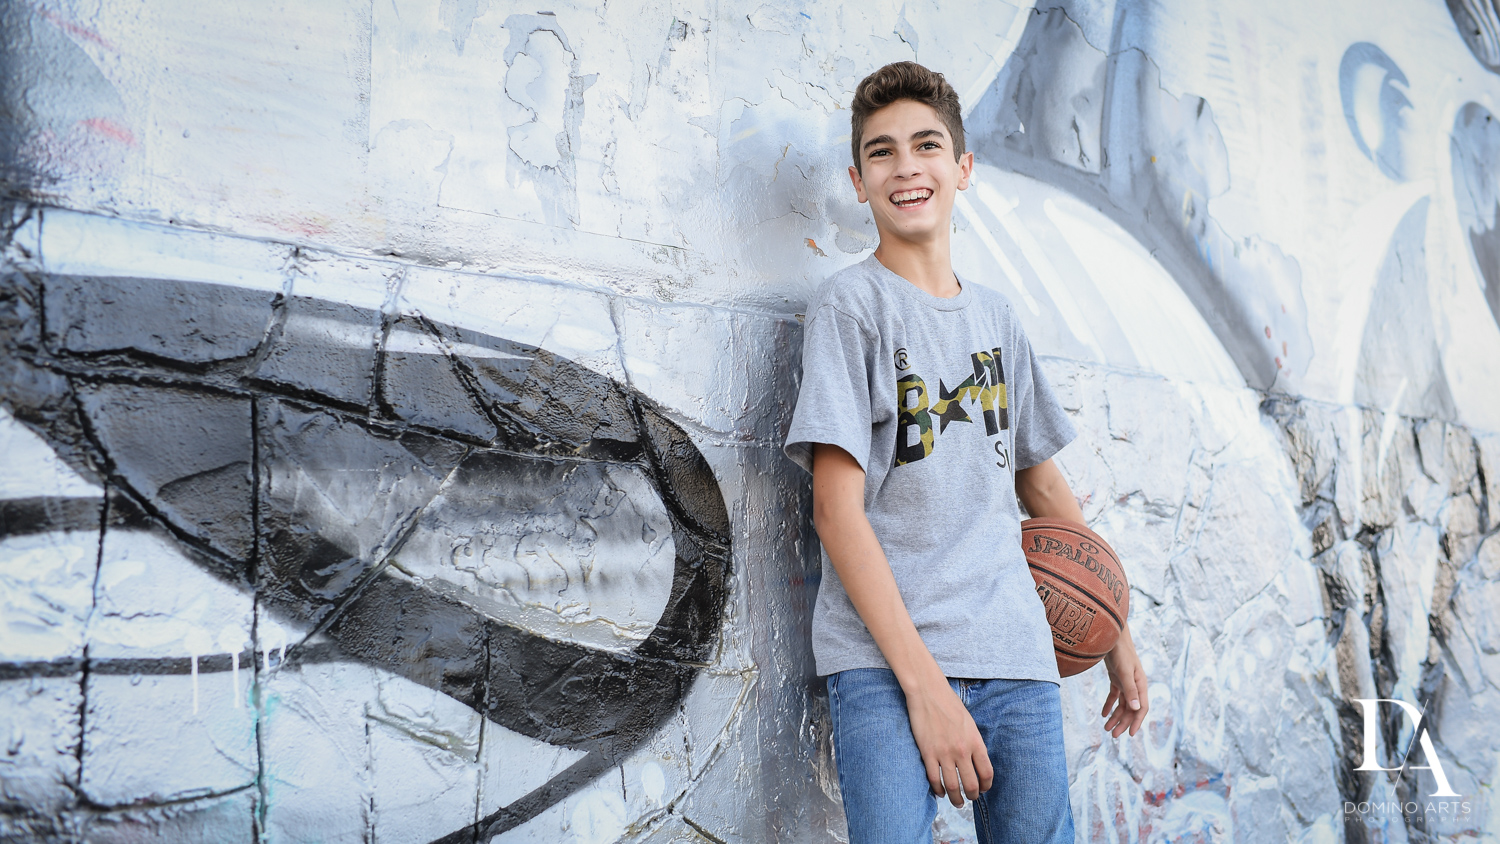 Graffiti Walls Mitzvah pictures Wynwood Walls by Domino Arts Photography